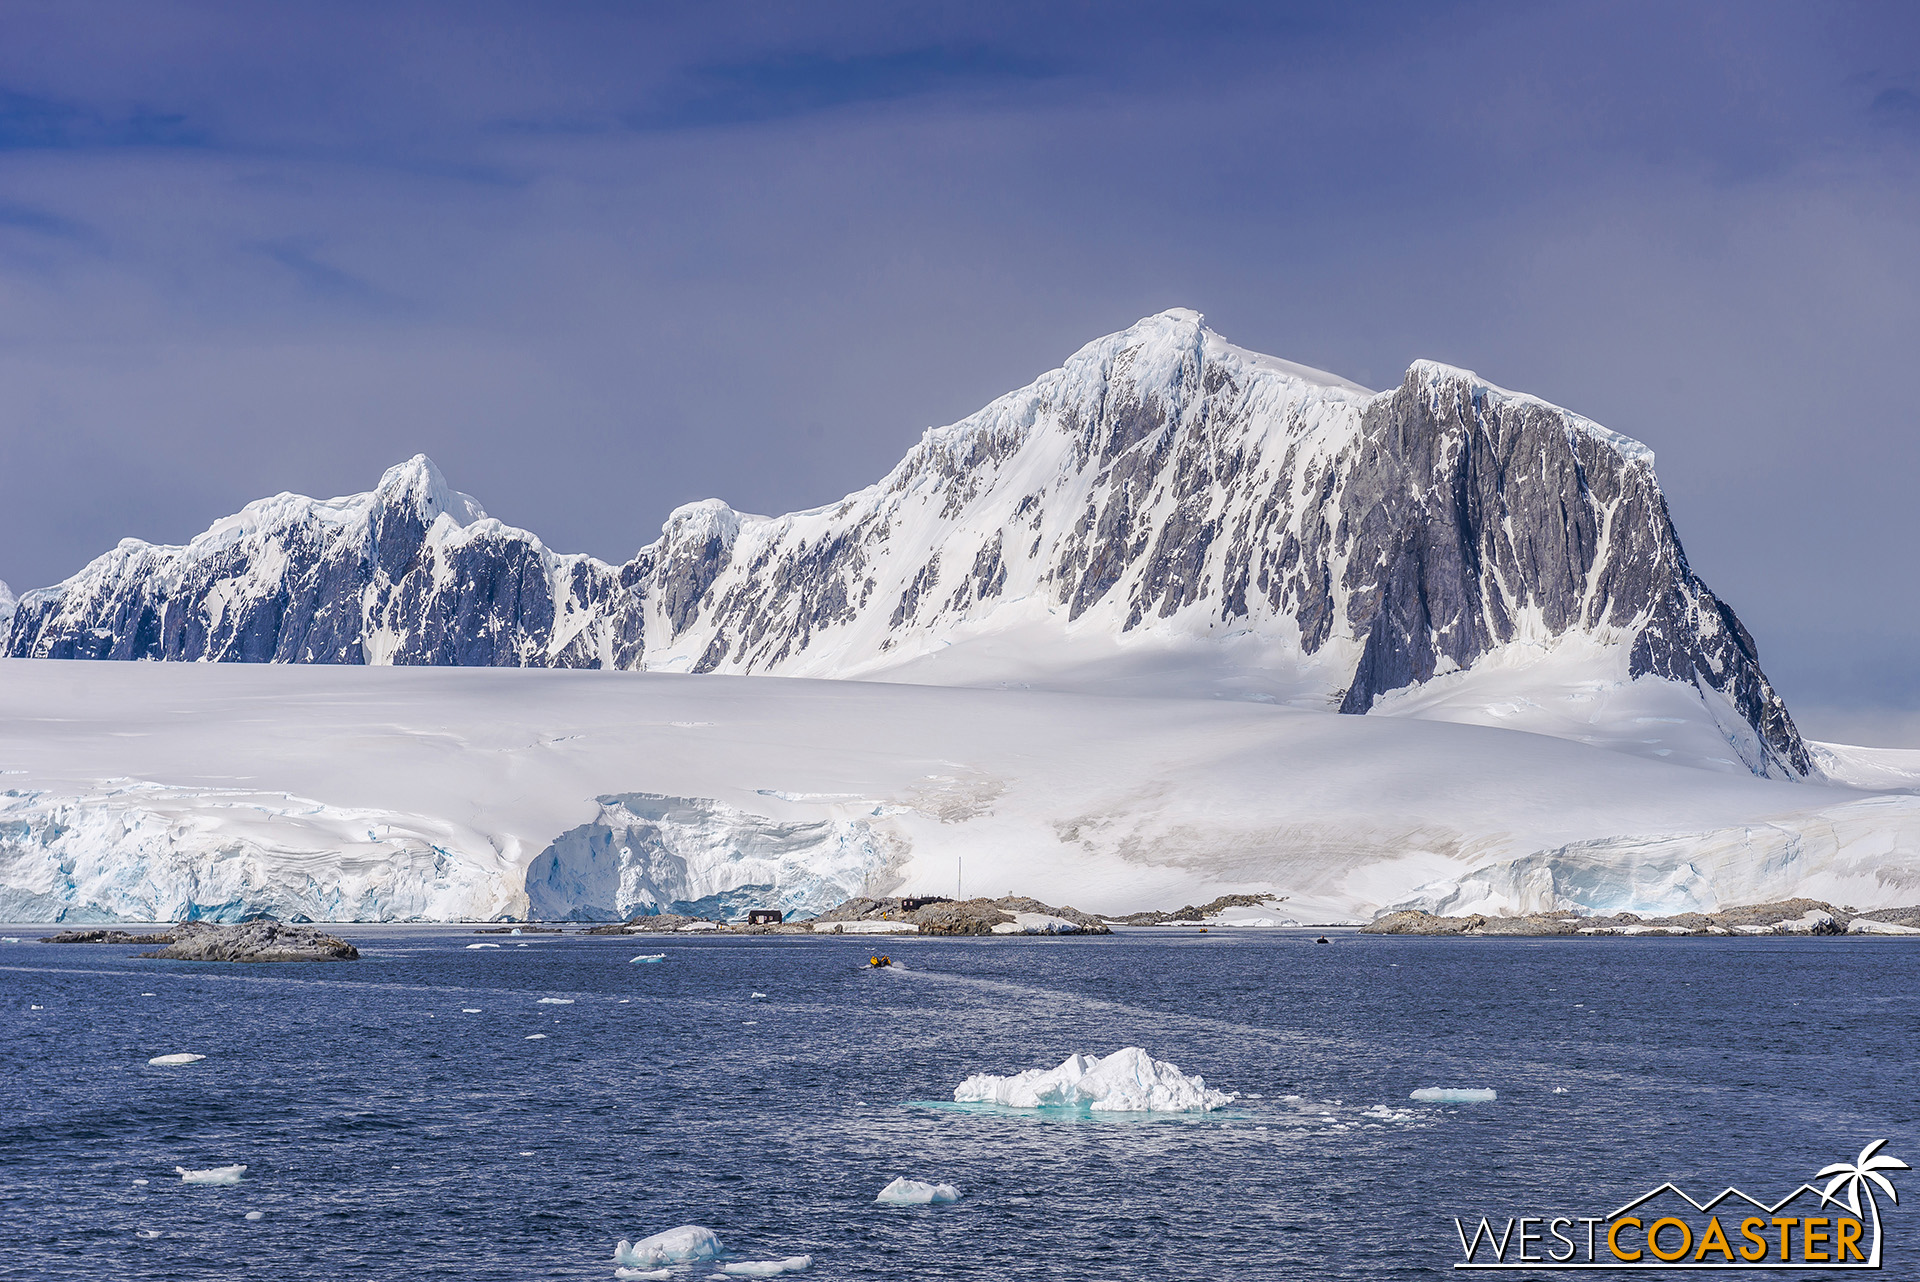 The tiny base at Port Lockroy is dwarfed by the resplendent landscape behind it.